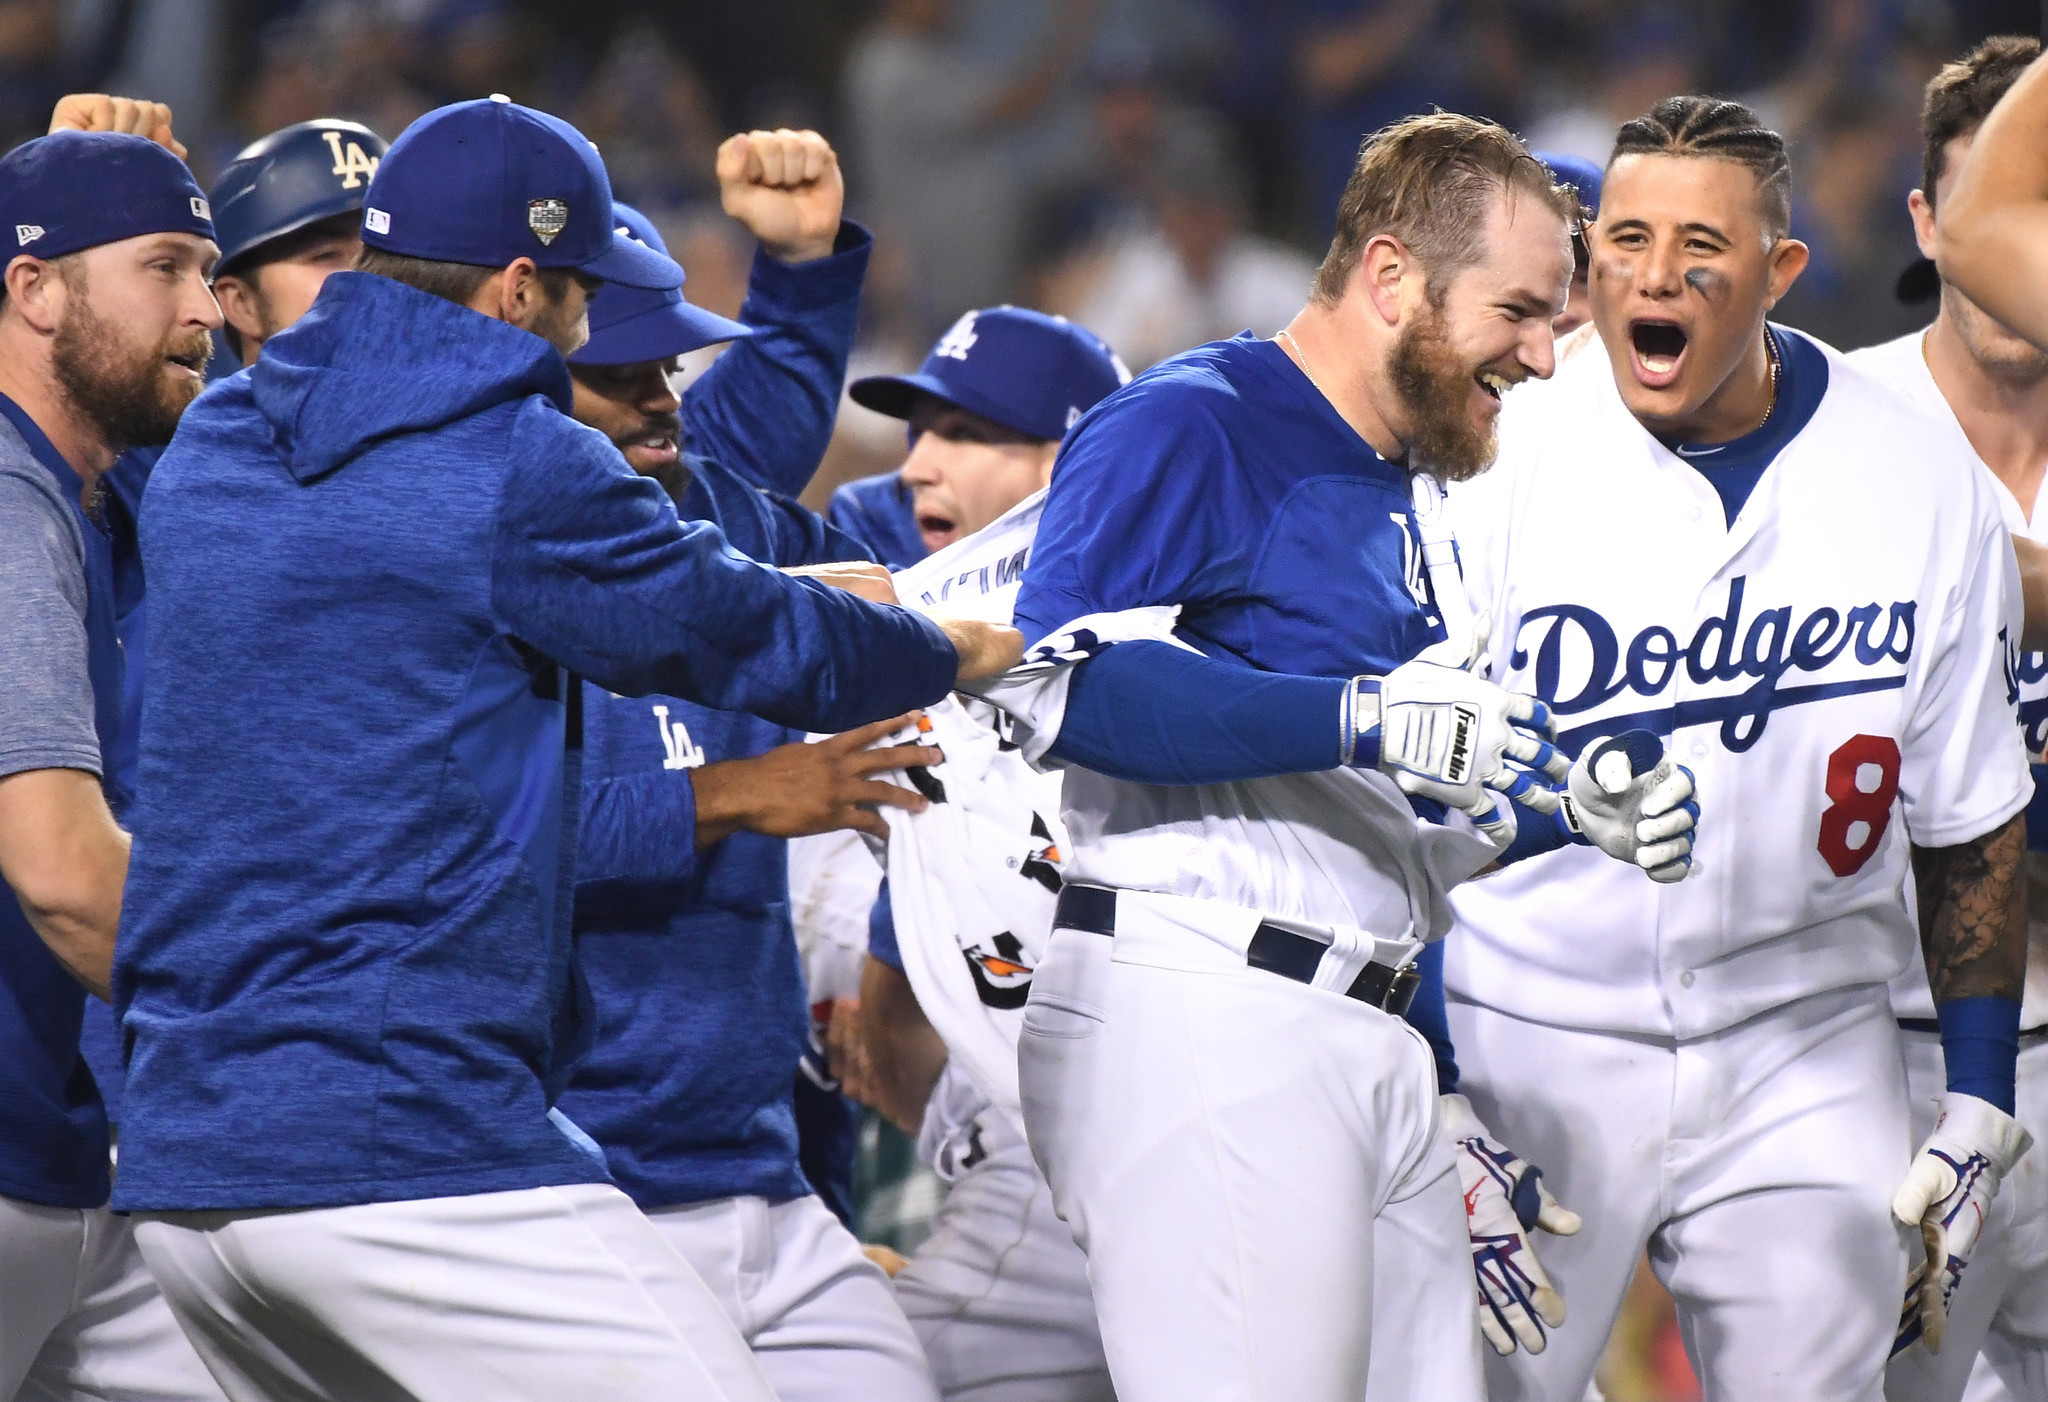 LOS ANGELES, CALIFORNIA , OCTOBER 26, 2018-Dodgers Max Muncy's, second from right, celebrates his wa